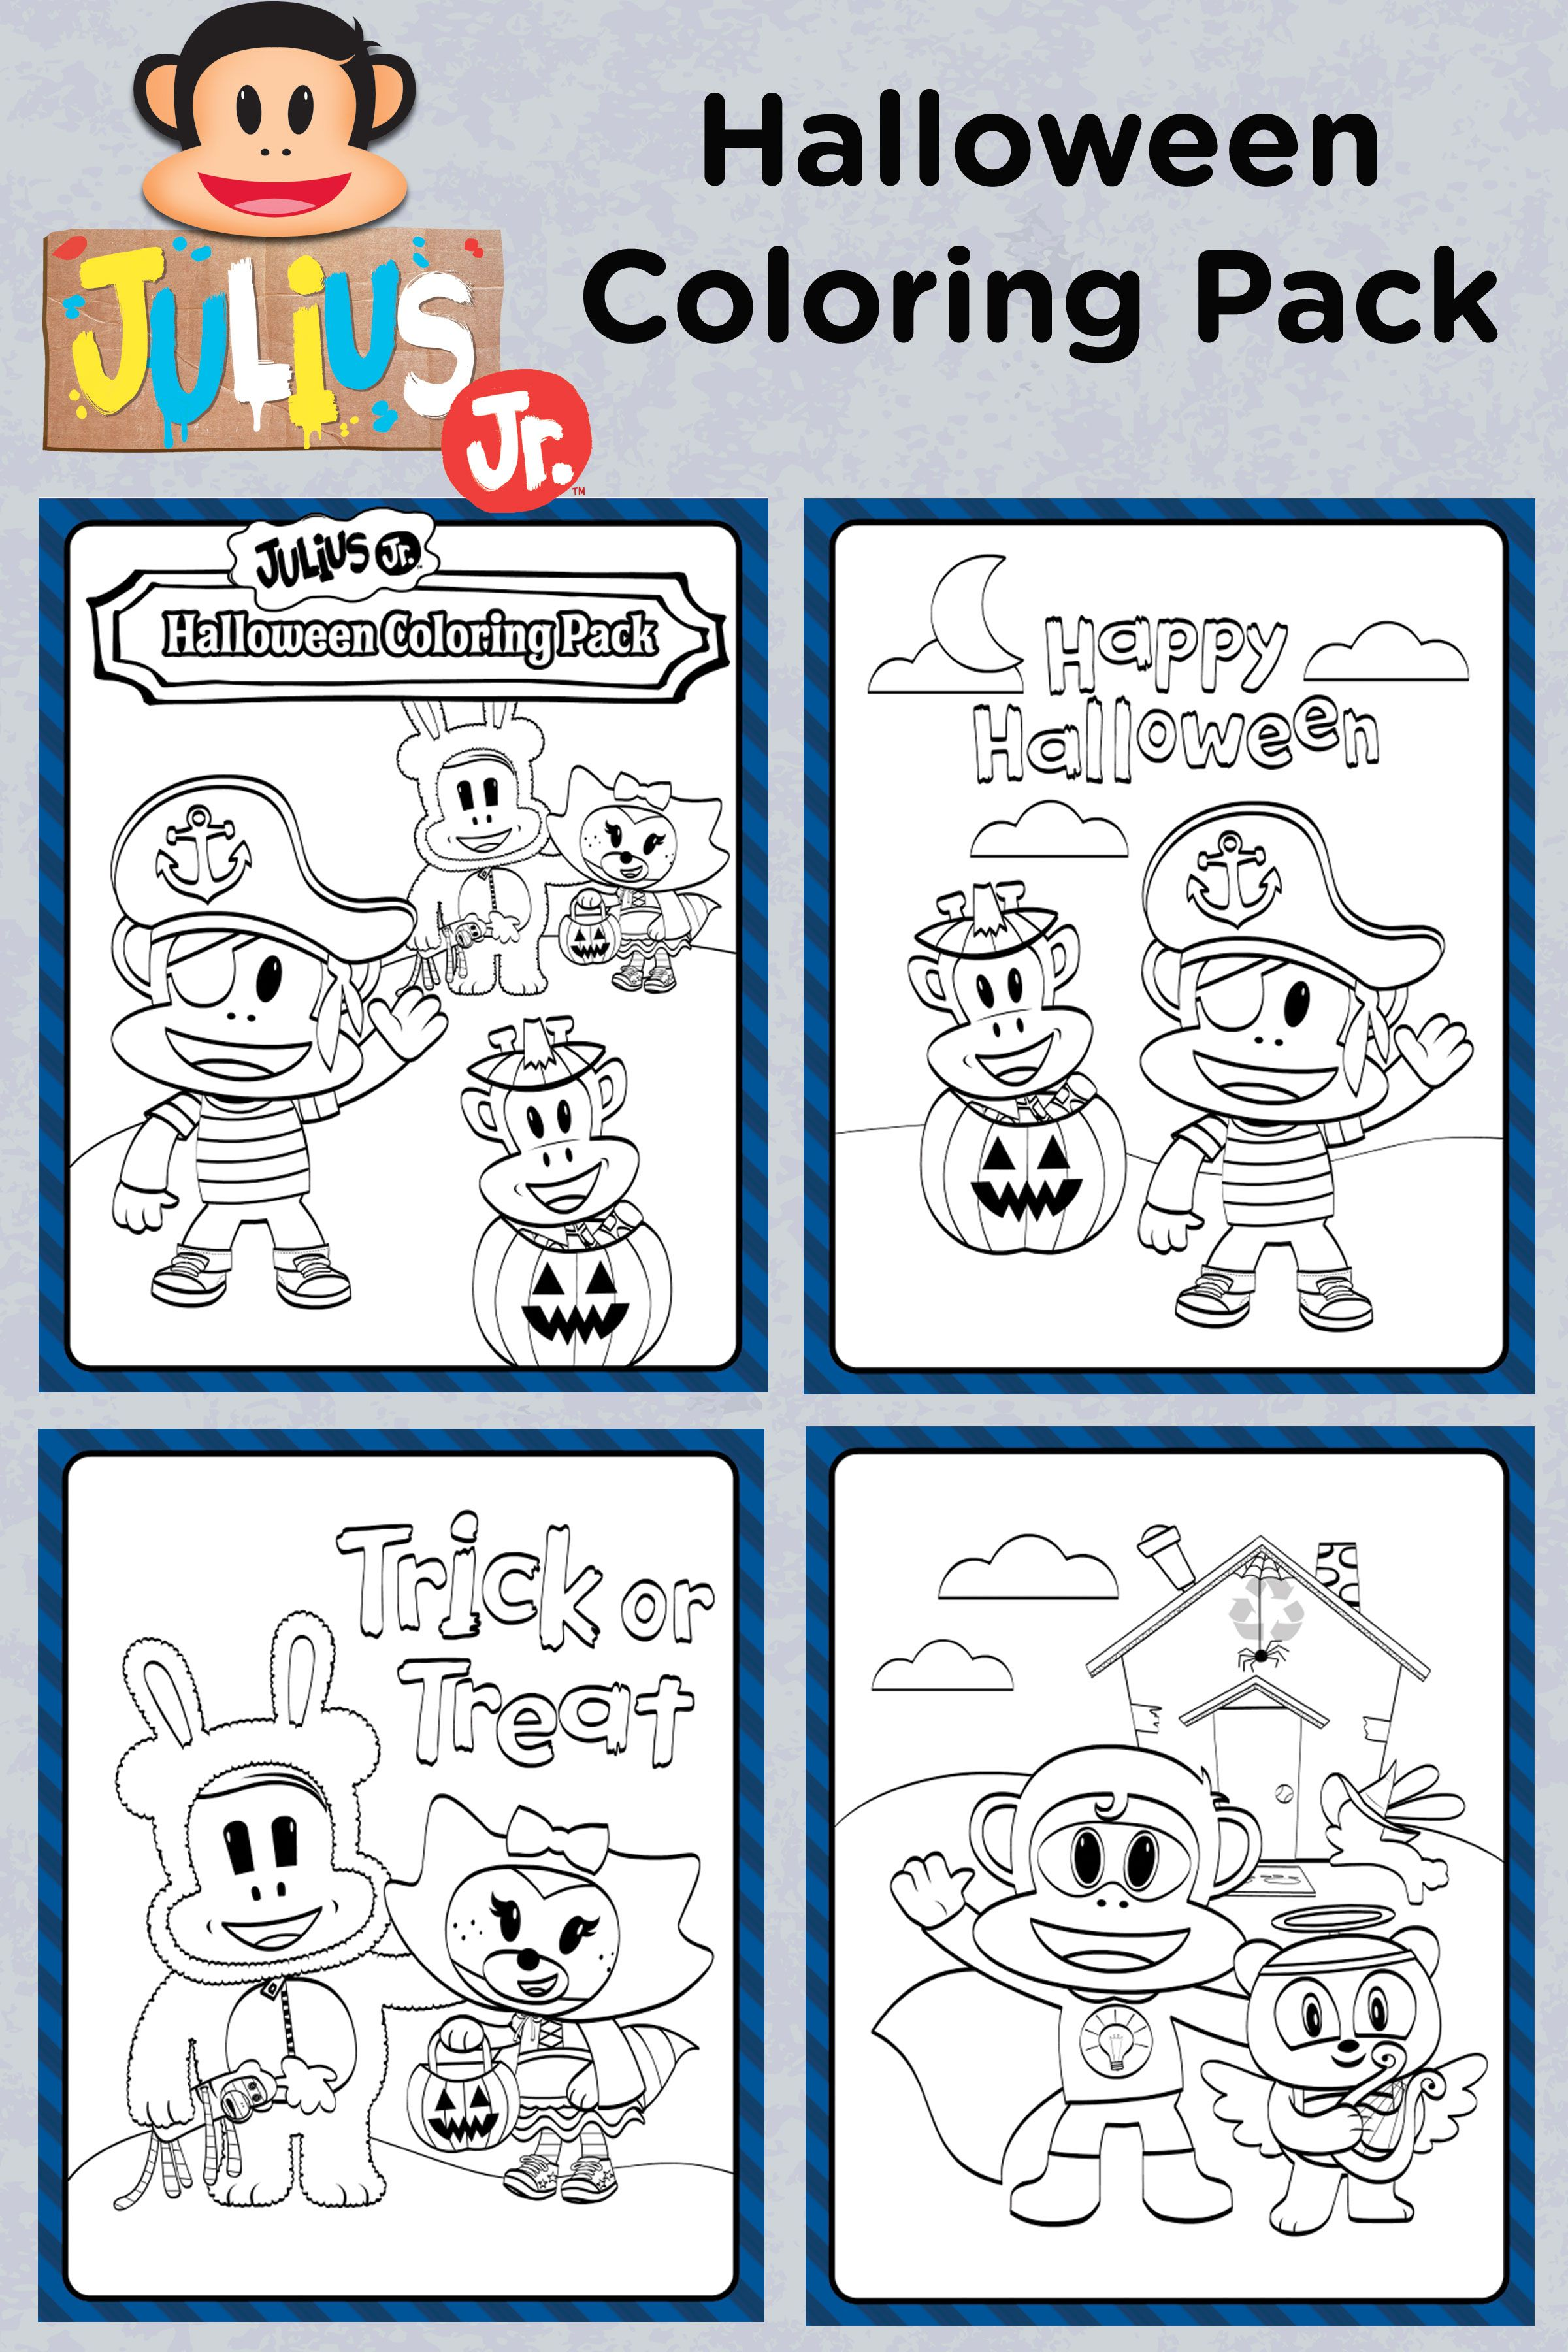 Get Ready For Halloween By Coloring In These Pictures Of